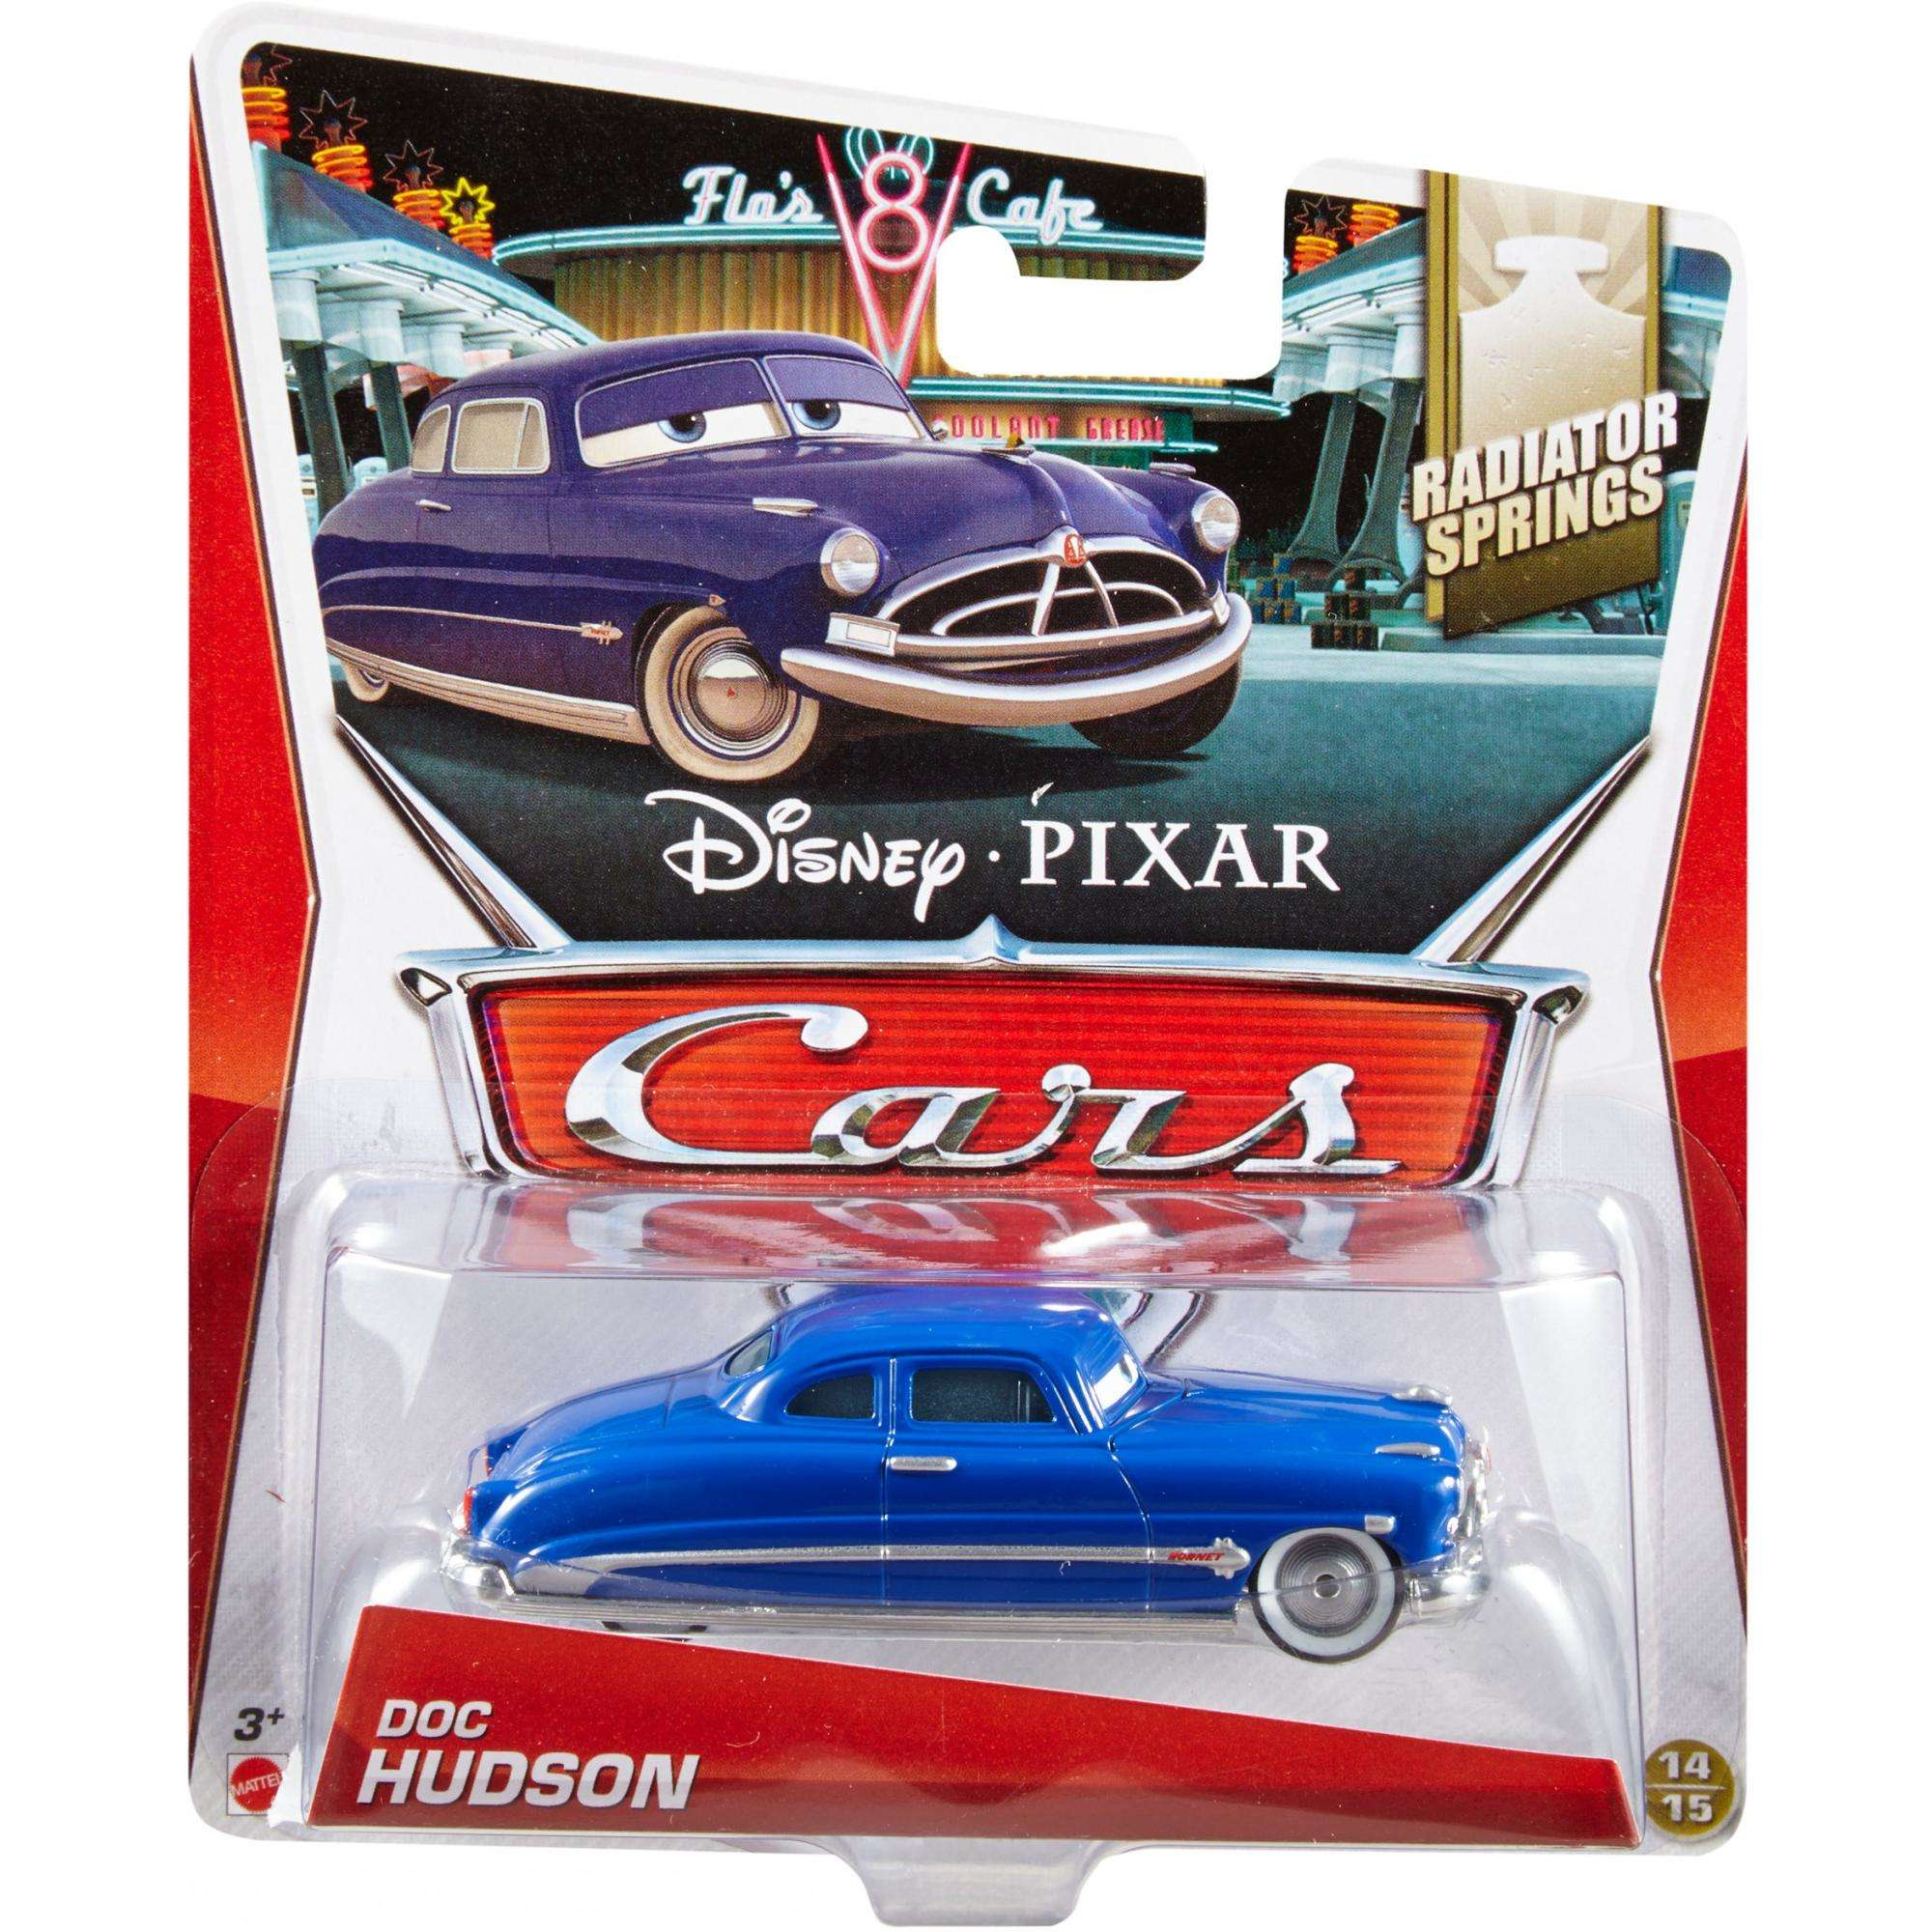 Disney/Pixar Cars Doc Hudson cast Car - Walmart.com on golf girls, golf handicap, golf accessories, golf tools, golf cartoons, golf trolley, golf machine, golf words, golf players, golf hitting nets, golf buggy, golf games, golf card,